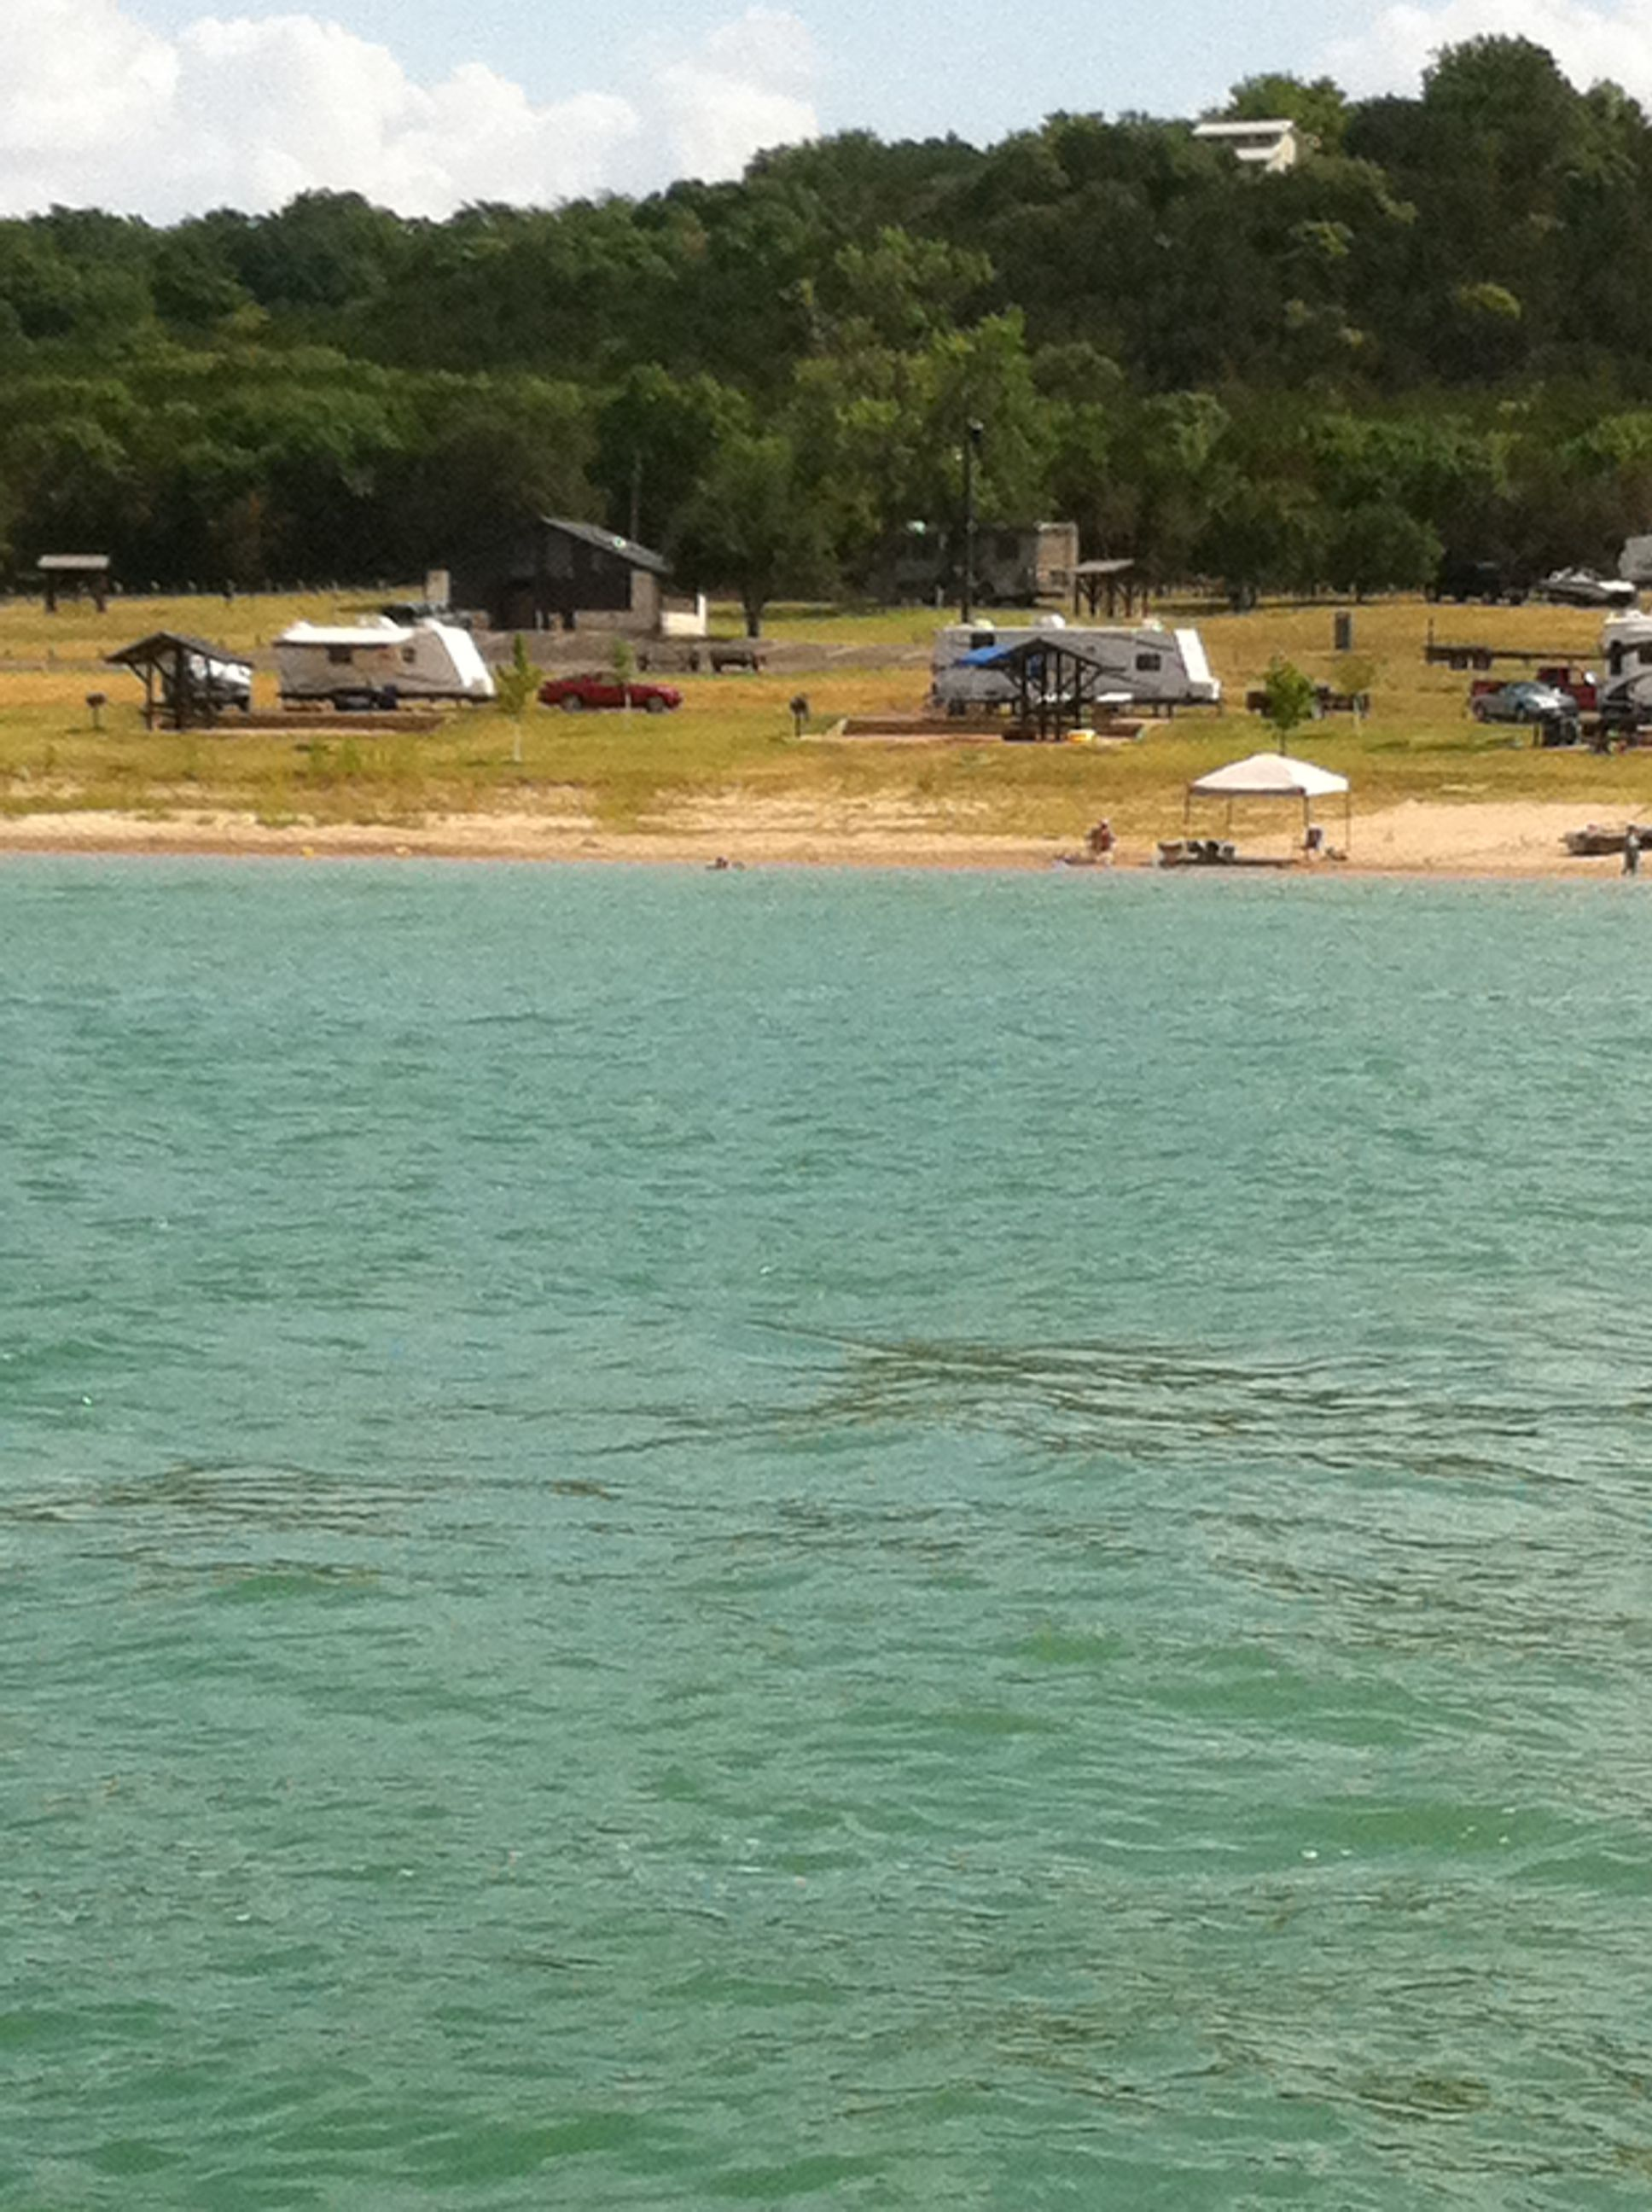 Belton Lake Texas Westcliff Rv Park Belton Lake Tx Camping Boating Fishing Campsites Killeen Belton Fort Hood Tx Mendocino Camping Camping In Texas Camping In Pennsylvania